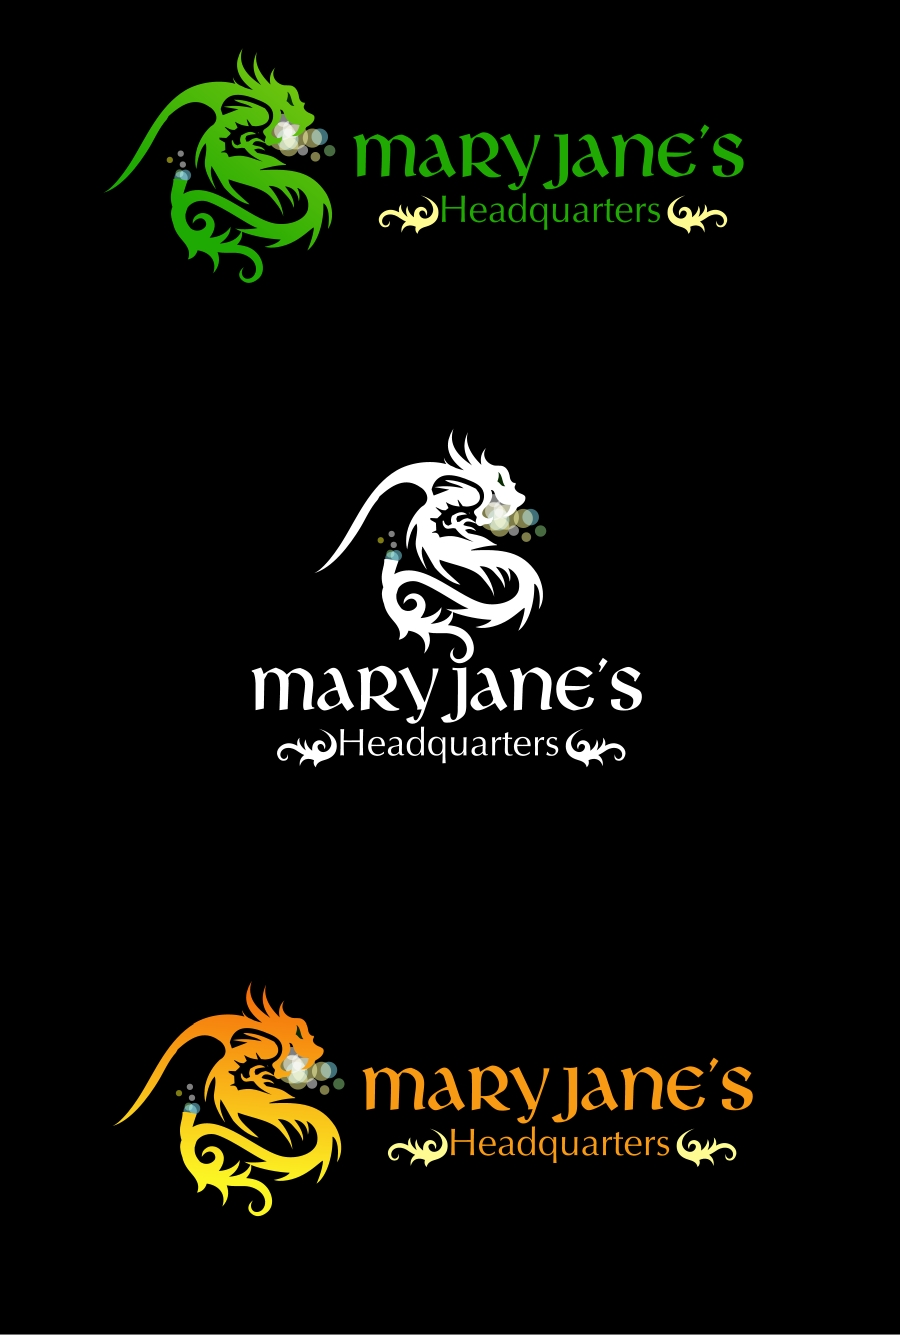 Logo Design by Private User - Entry No. 81 in the Logo Design Contest Mary Jane's Headquarters Logo Design.